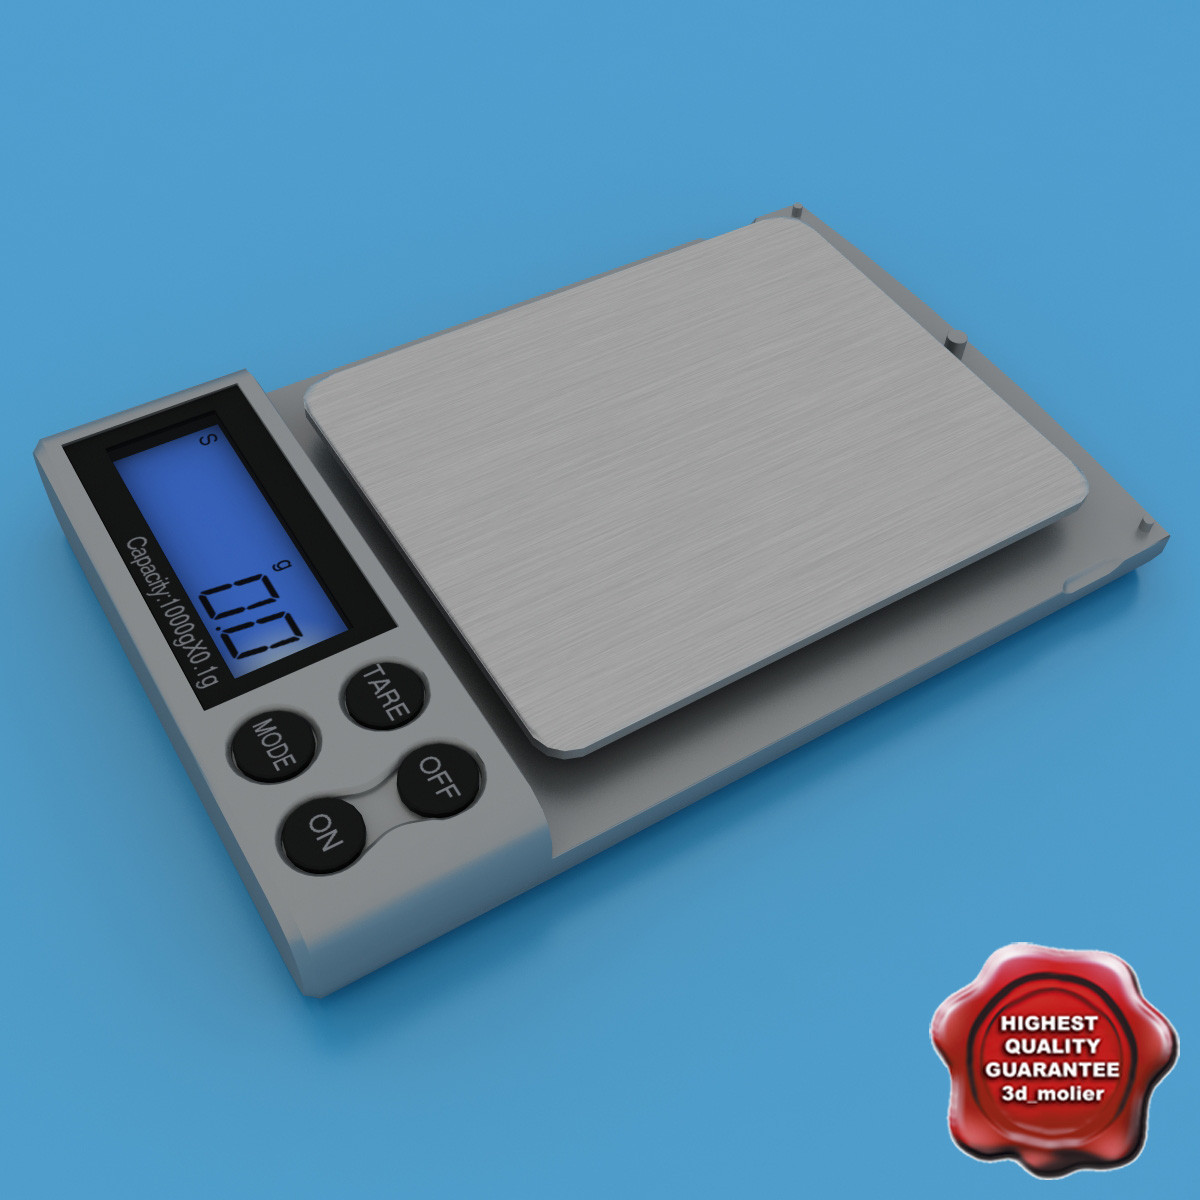 3d model of jewelry scales v2